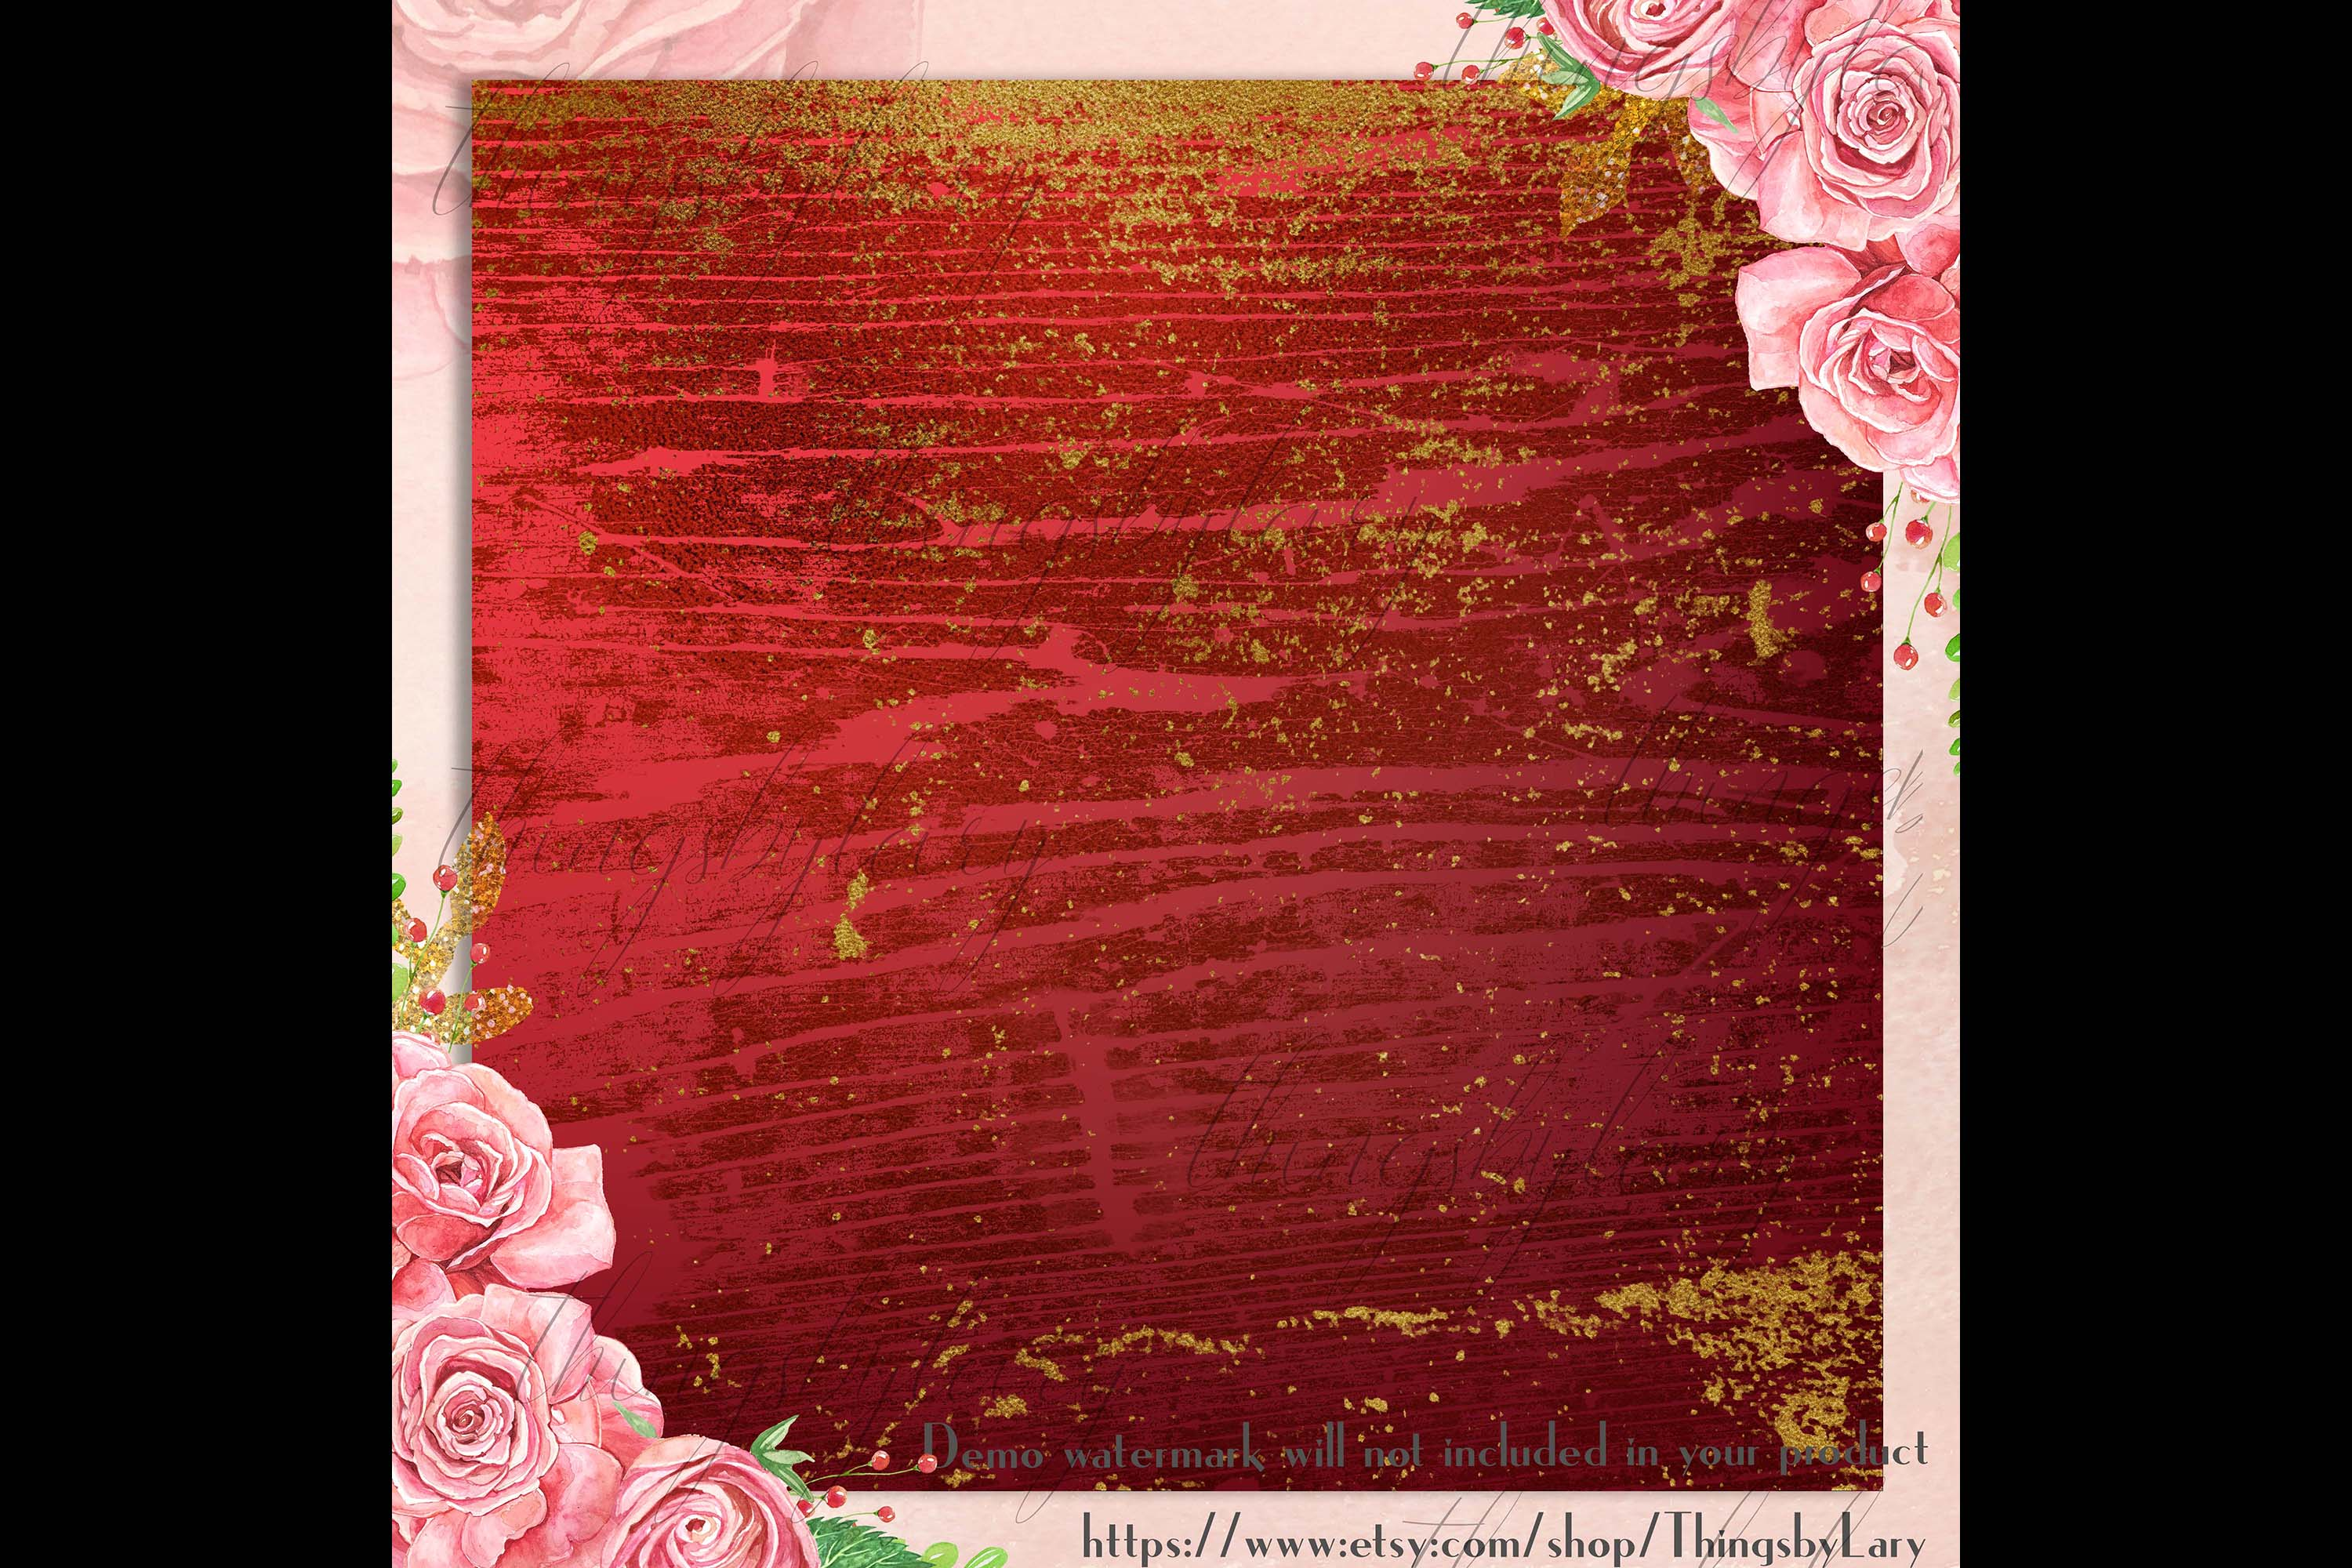 16 Distressed Red and Gold Artistic Painted Digital Papers example image 2